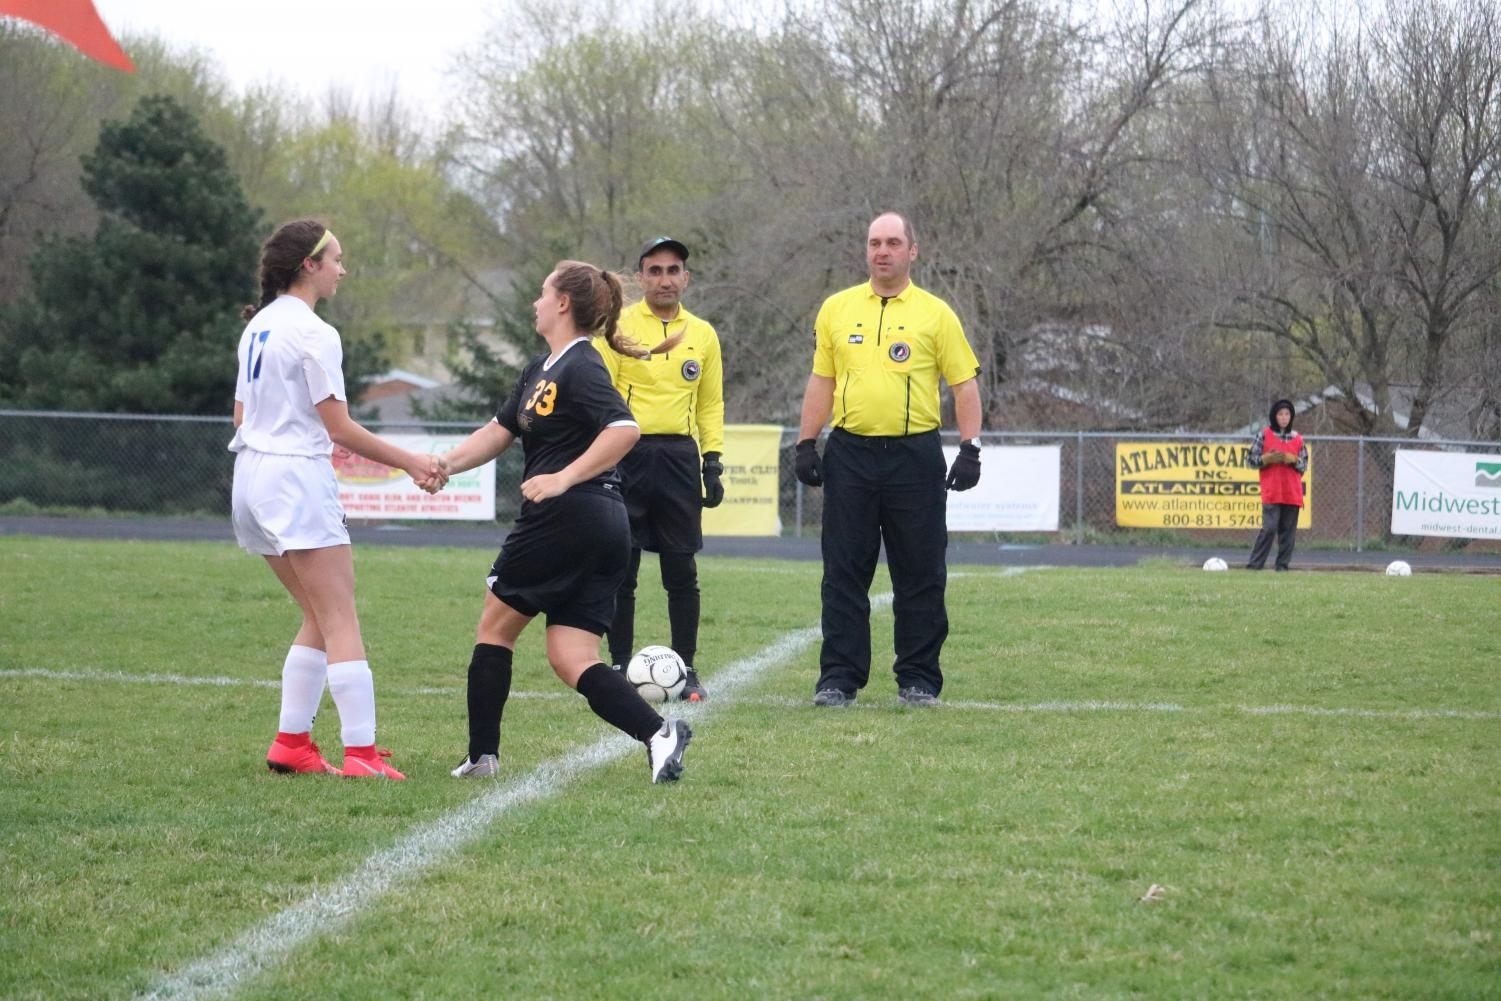 Sophomore Tatum Grubbs shakes hands with a member of the other team.